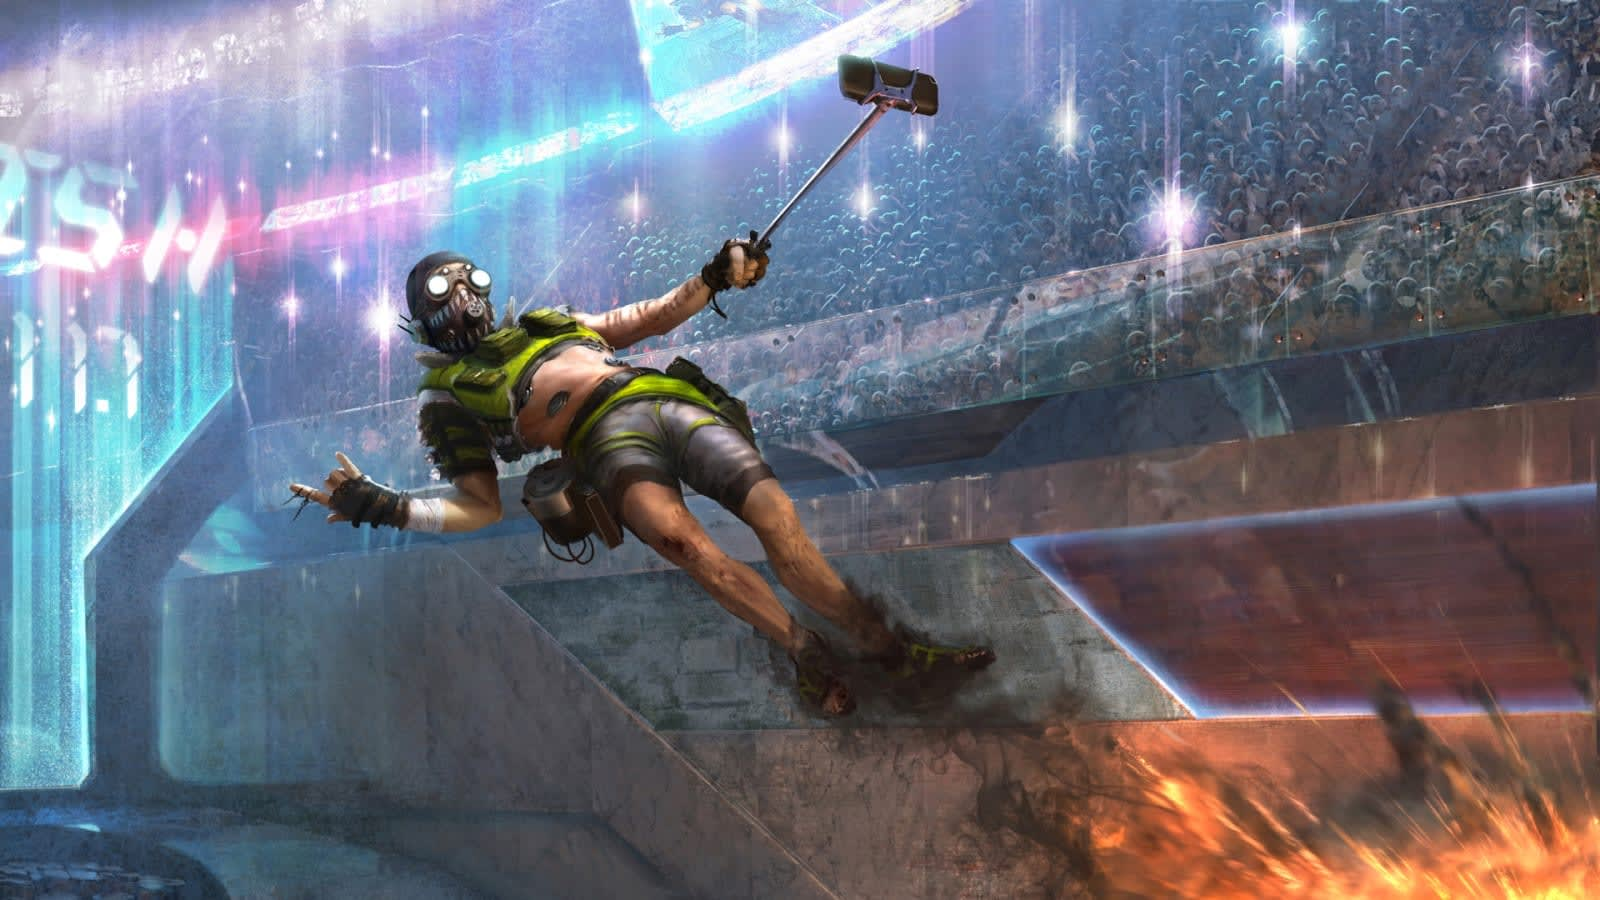 Esports Return To The X Games With Apex Legends Engadget